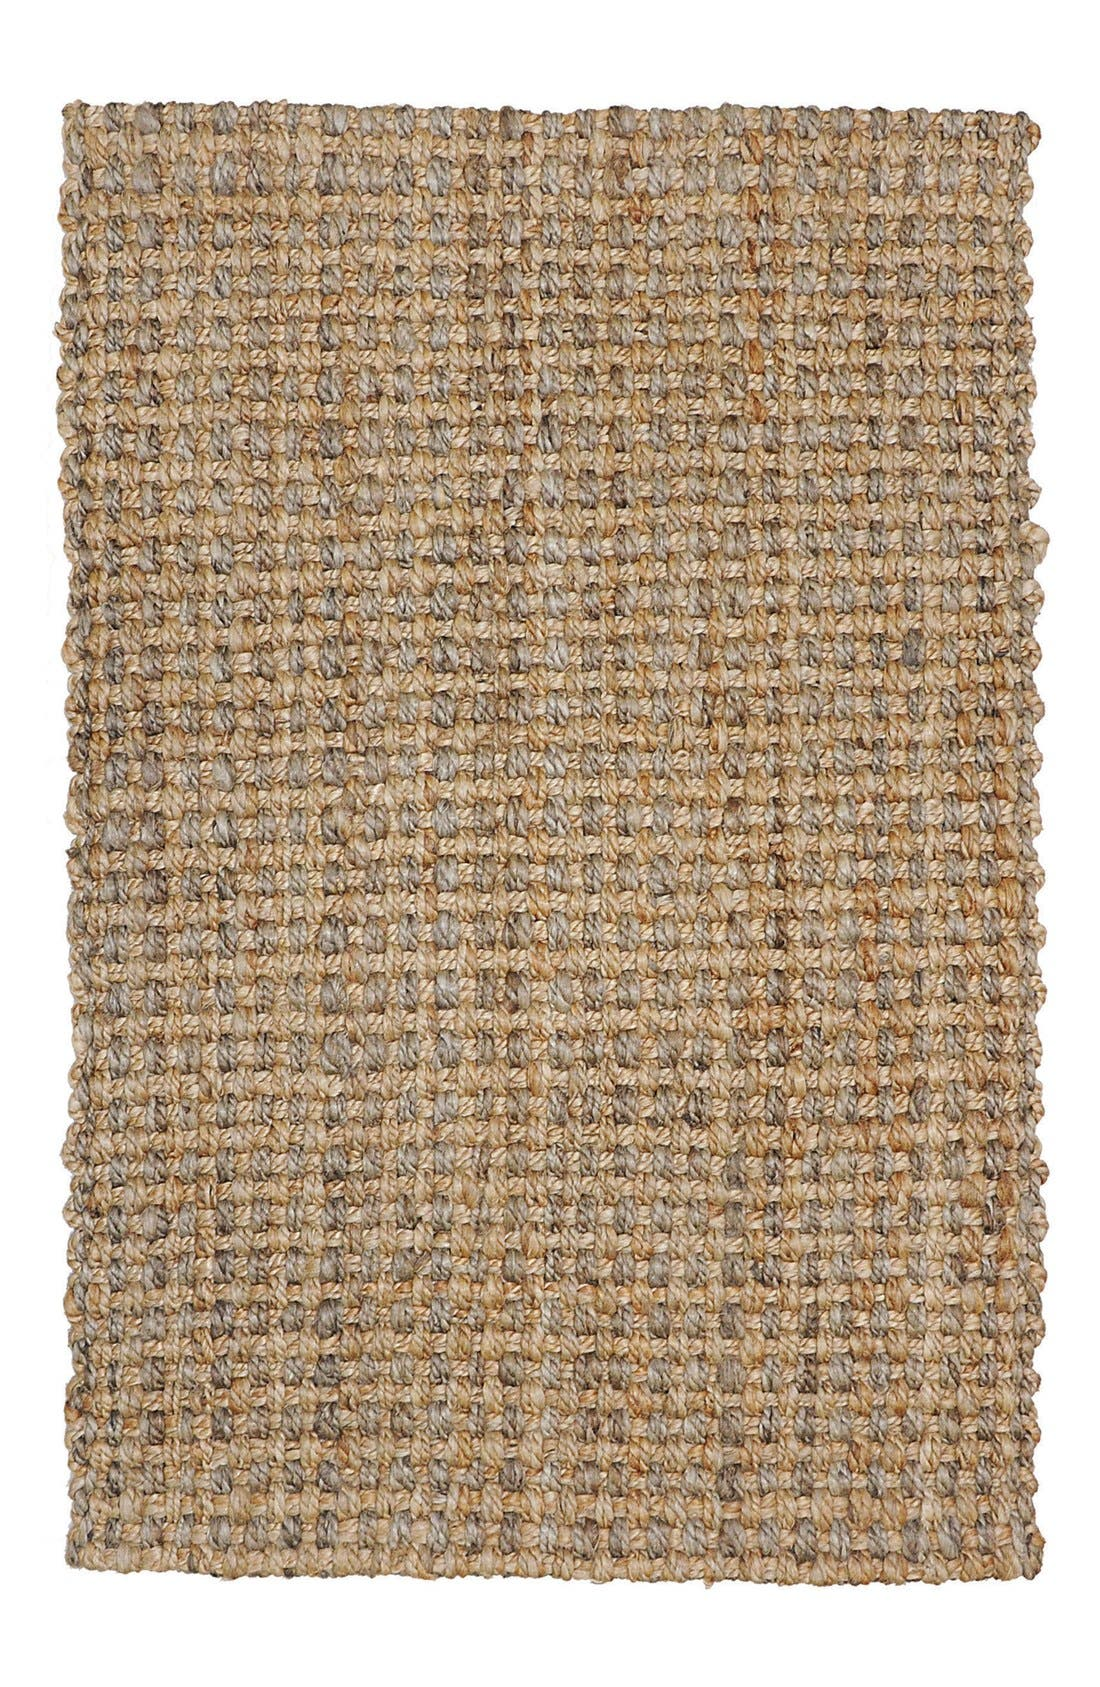 Panama Handwoven Rug,                             Main thumbnail 1, color,                             Natural/ Grey